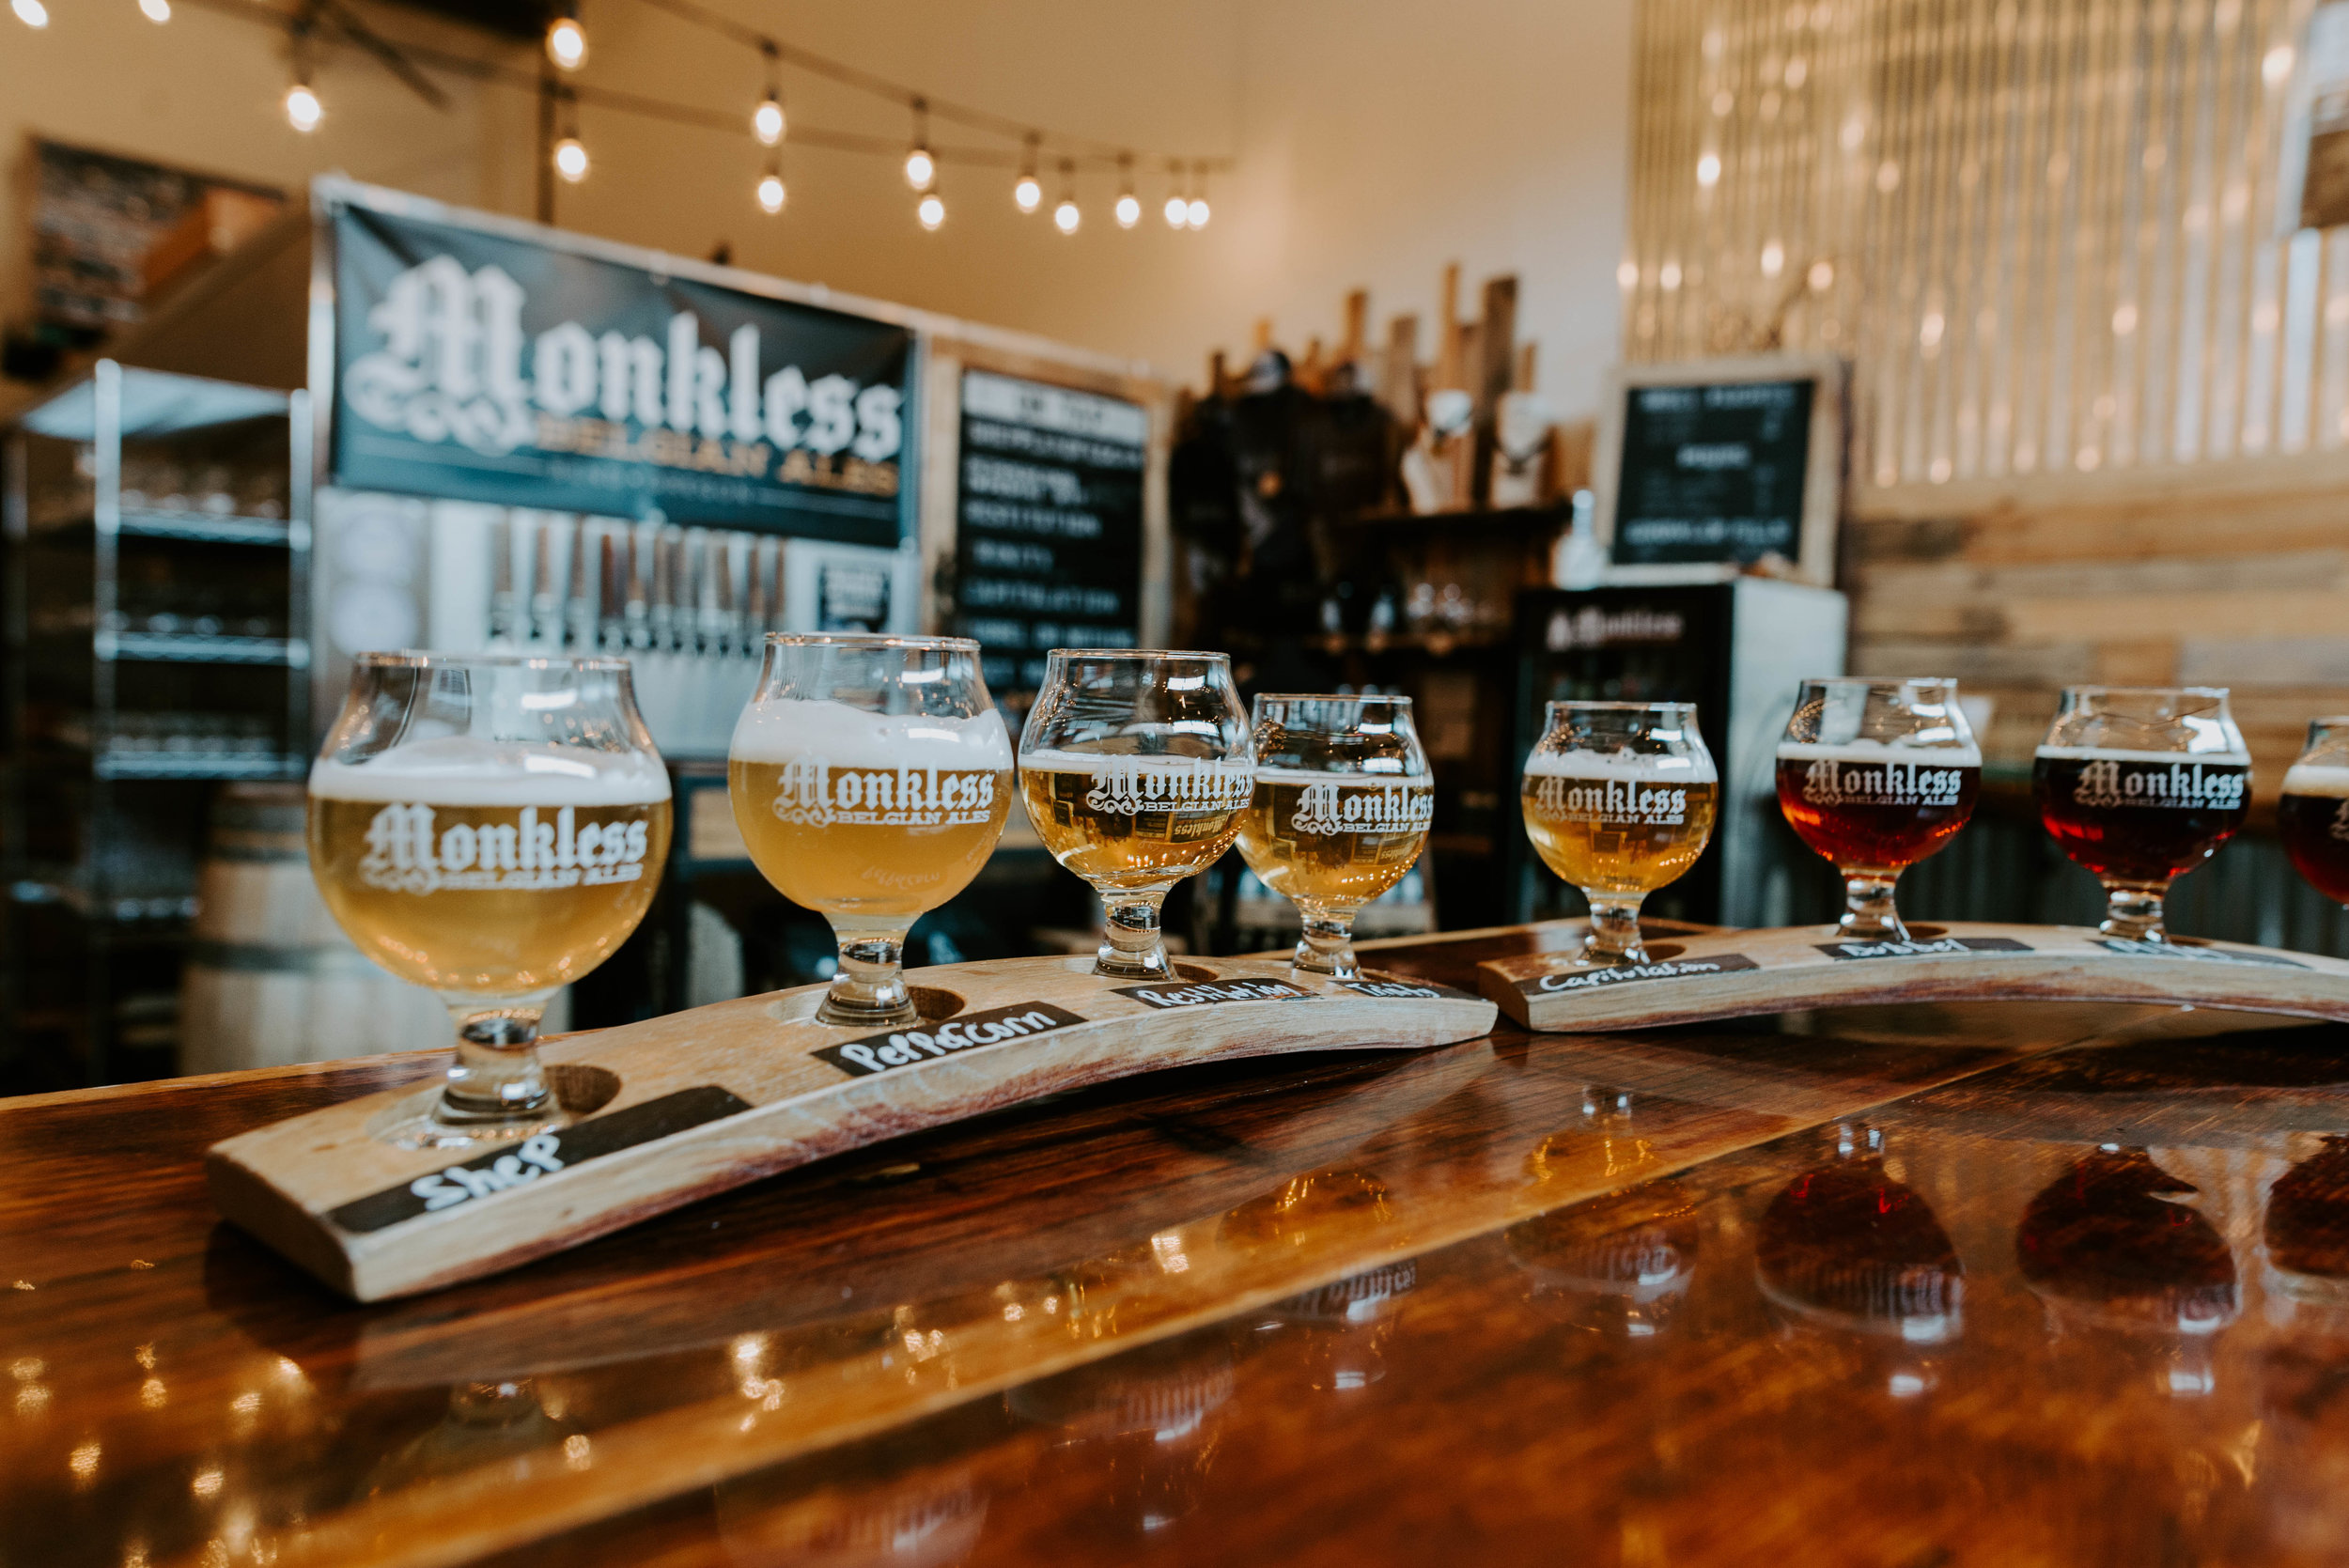 Monkless Brewing